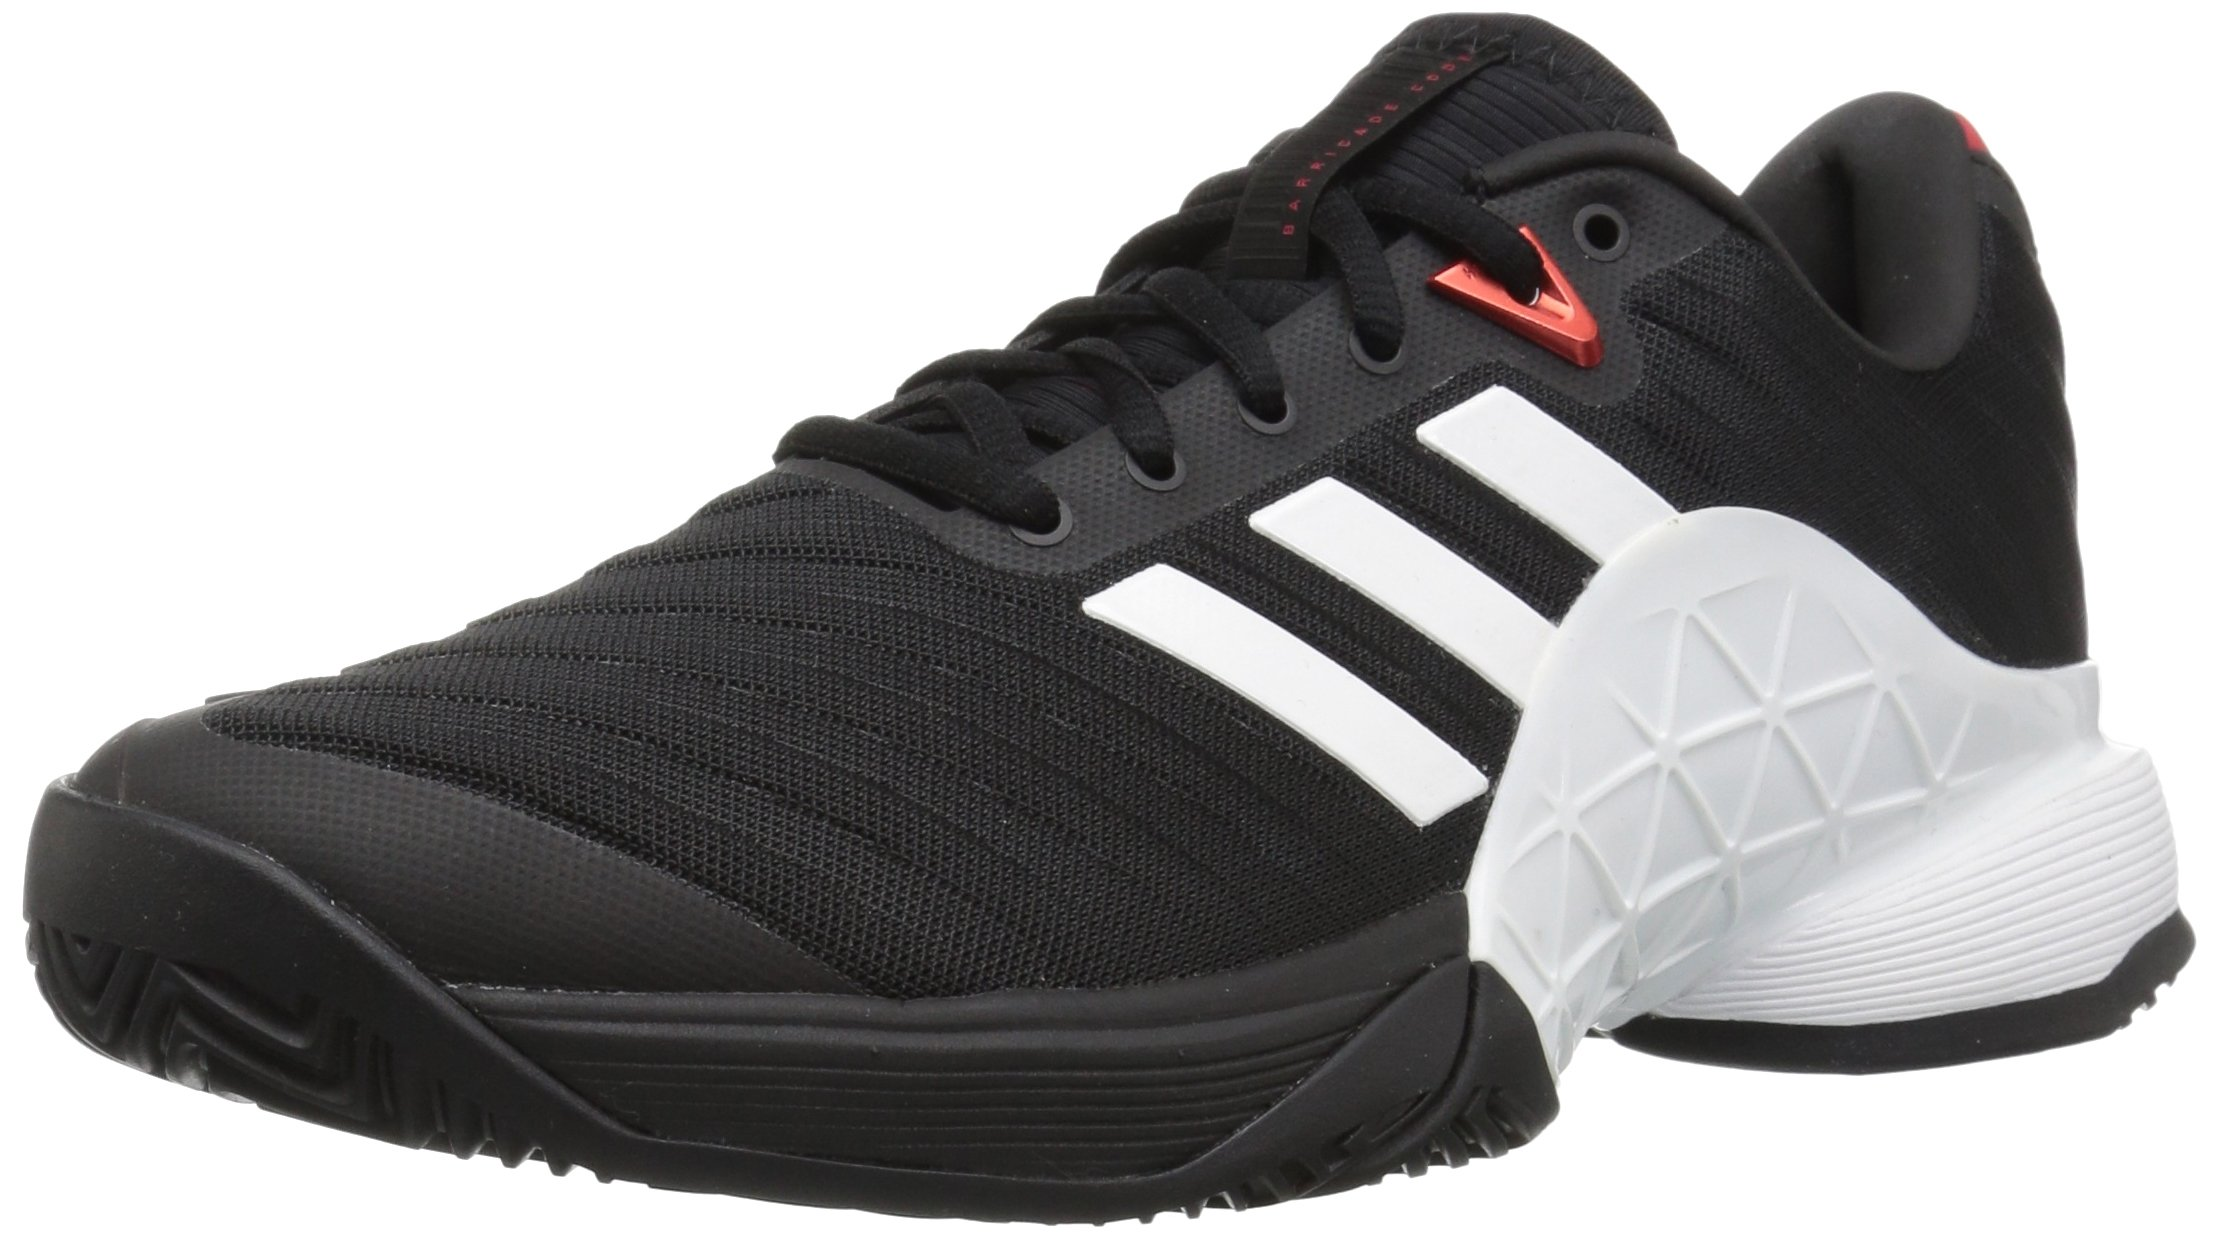 adidas Performance Men's Barricade 2018 Tennis Shoe, Core Black/White/Scarlet, 5 M US